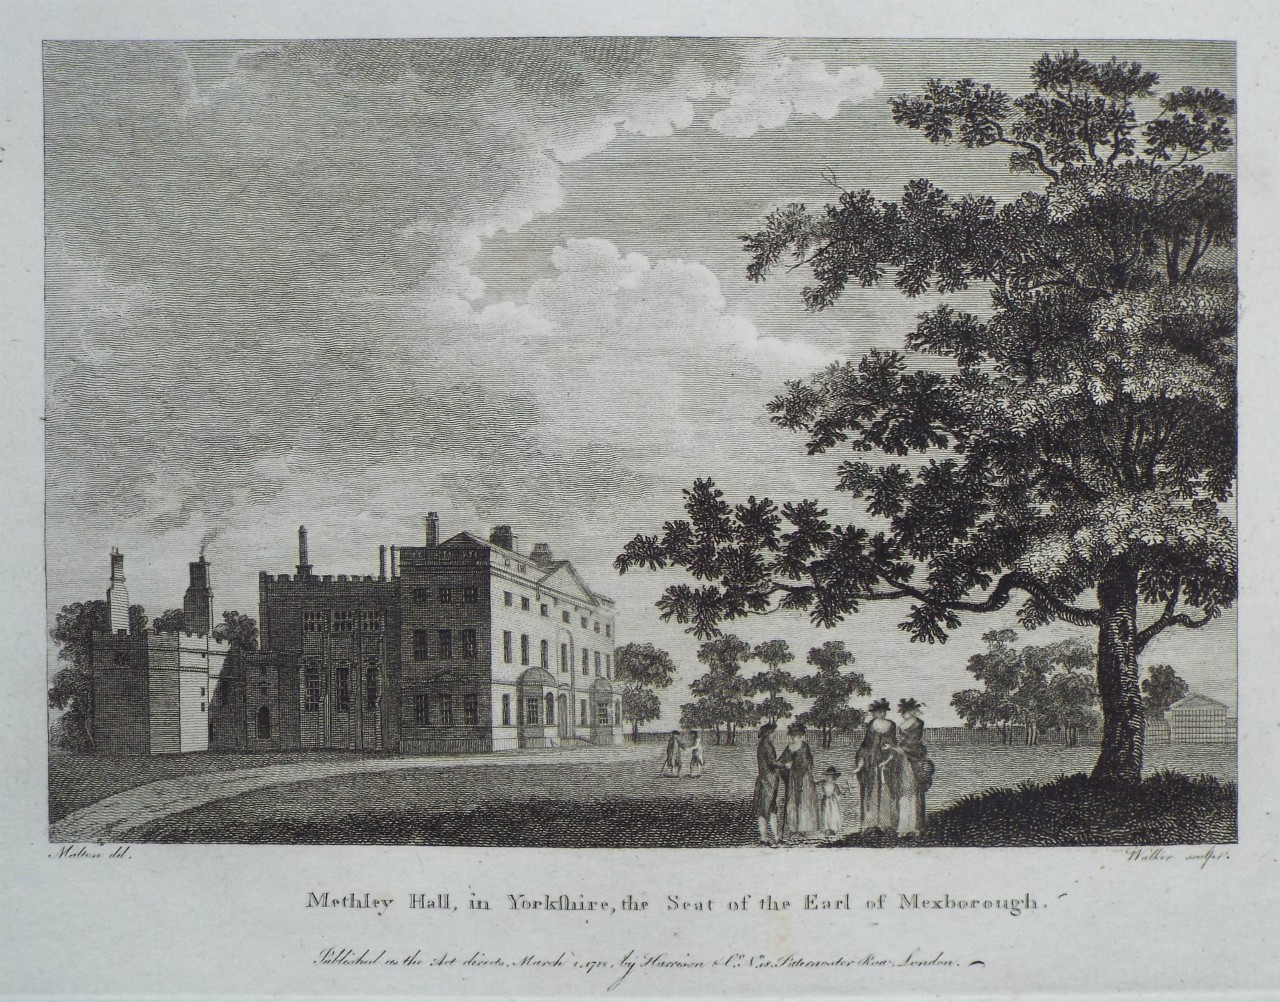 Print - Methley Hall, in Yorkshire, the Seat of the Earl of Mexborough. -